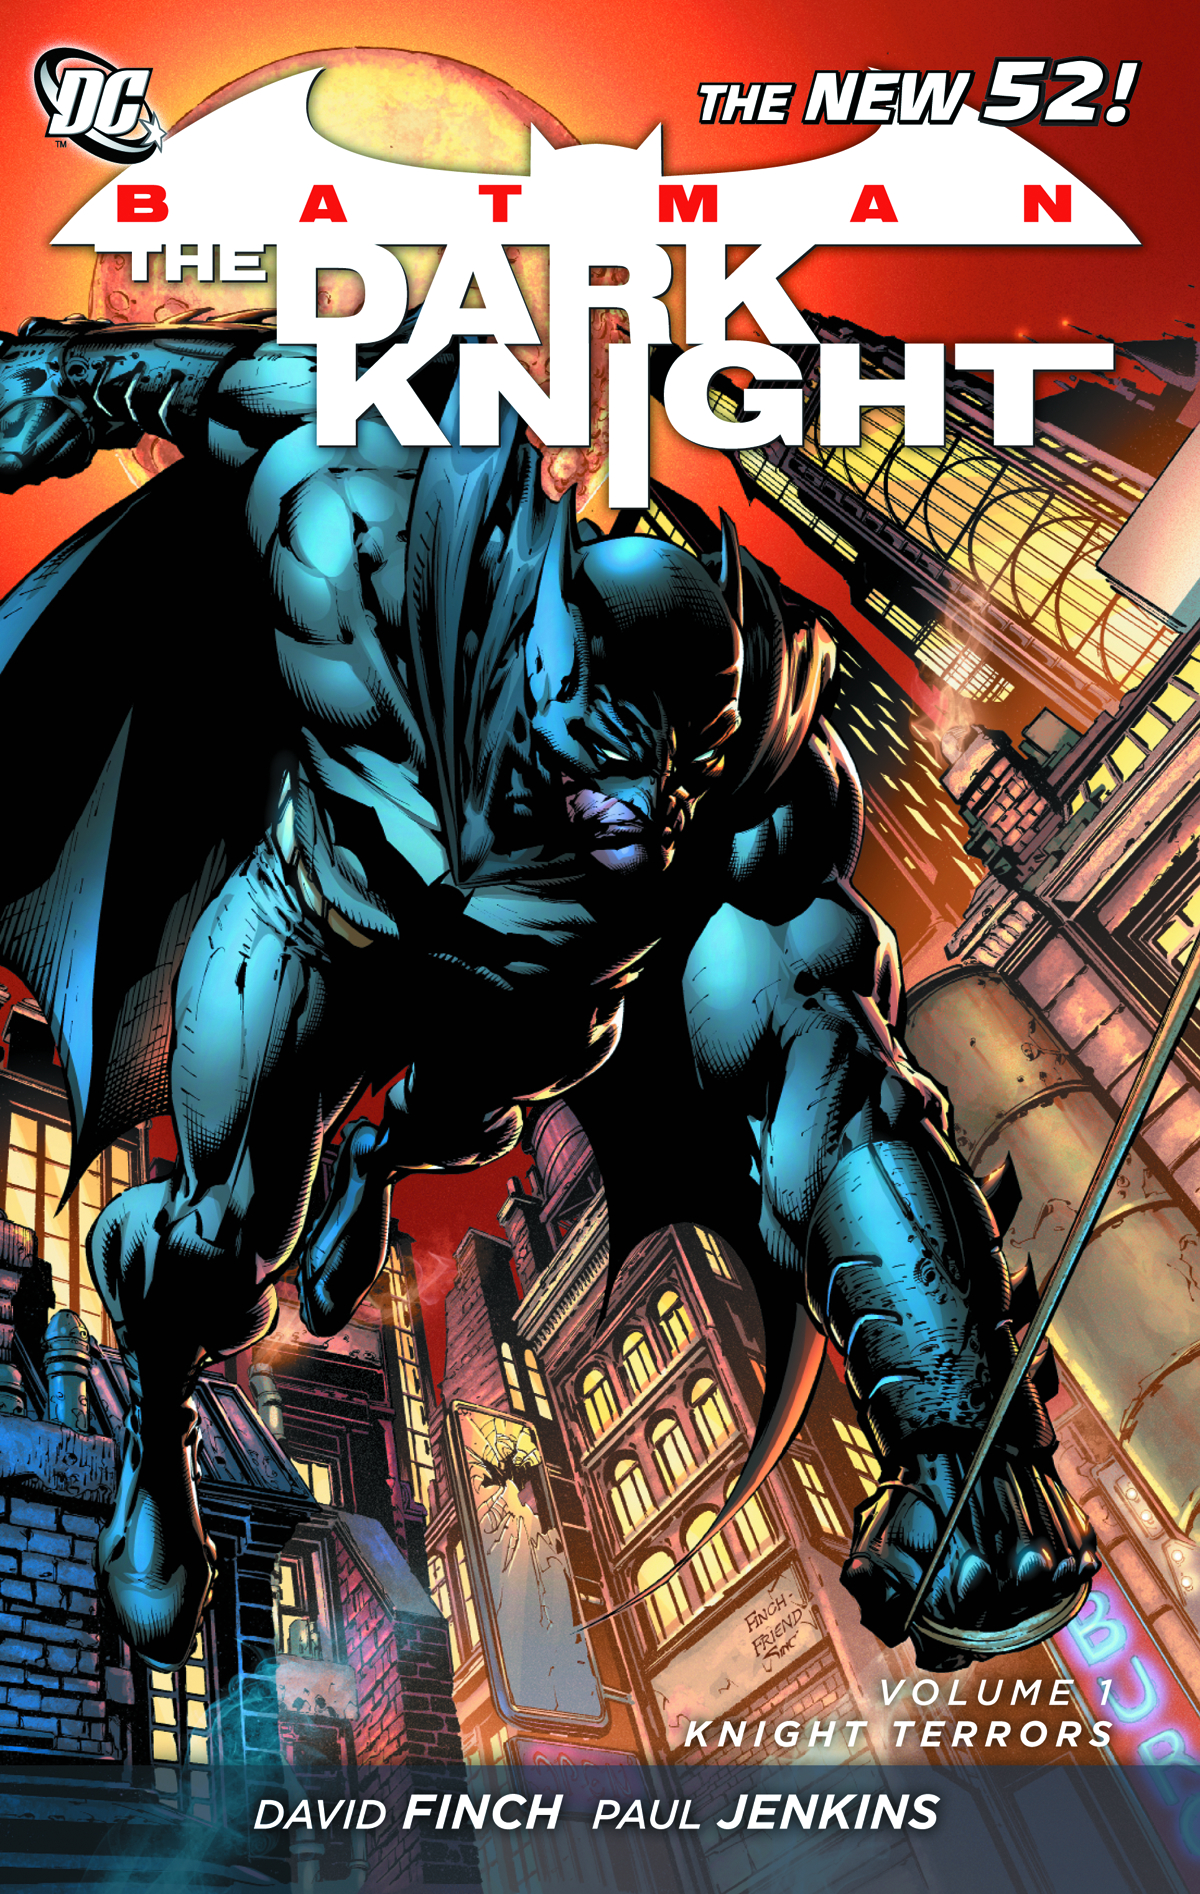 BATMAN DARK KNIGHT TP VOL 01 KNIGHT TERRORS